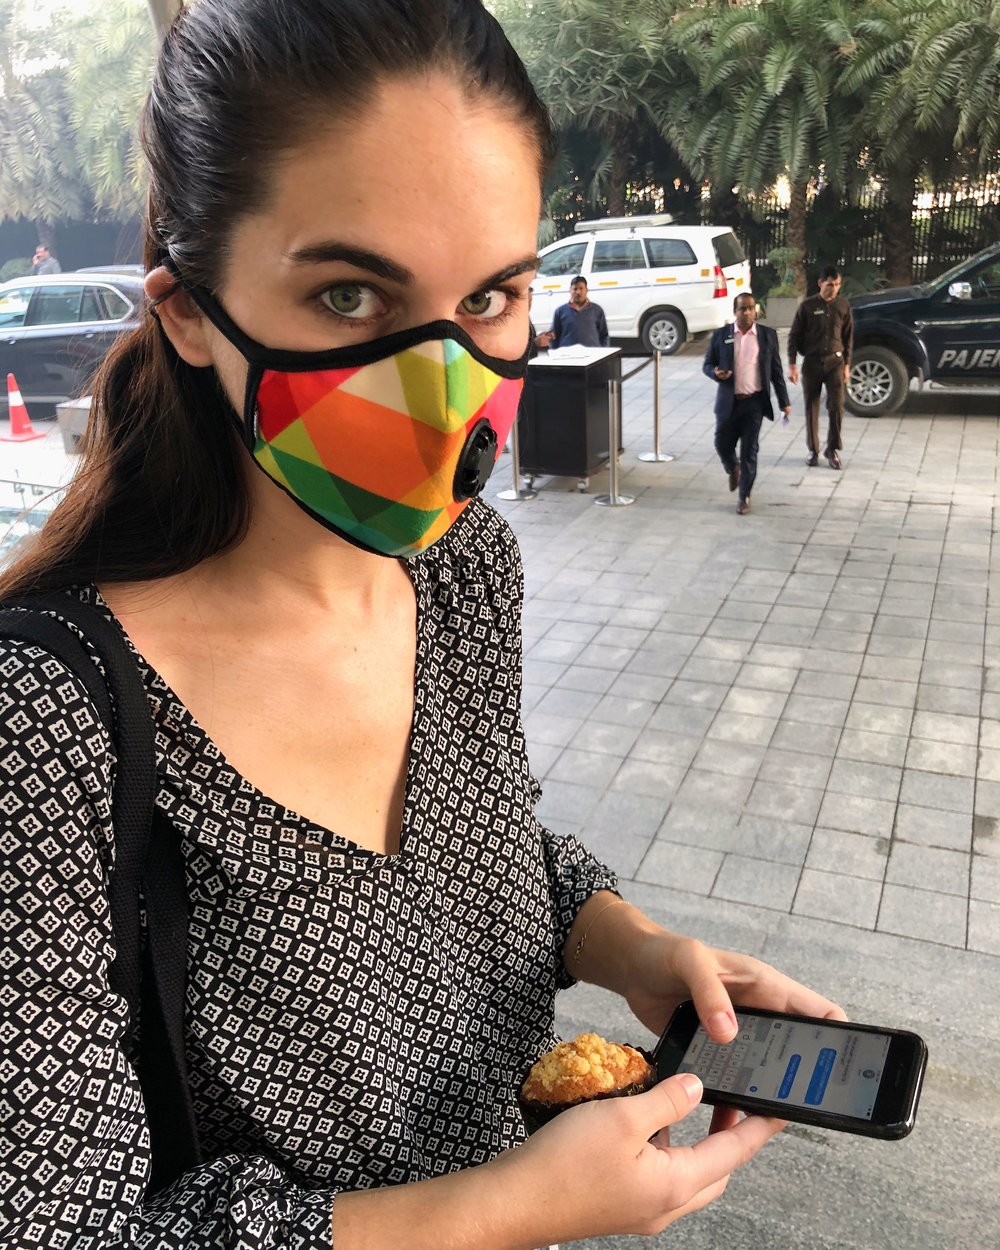 Me, 2017 - More recent me in my go-to meeting presentation shirt—oh, and a statement piece smog mask on one of my favorite work trips in New Delhi, India.